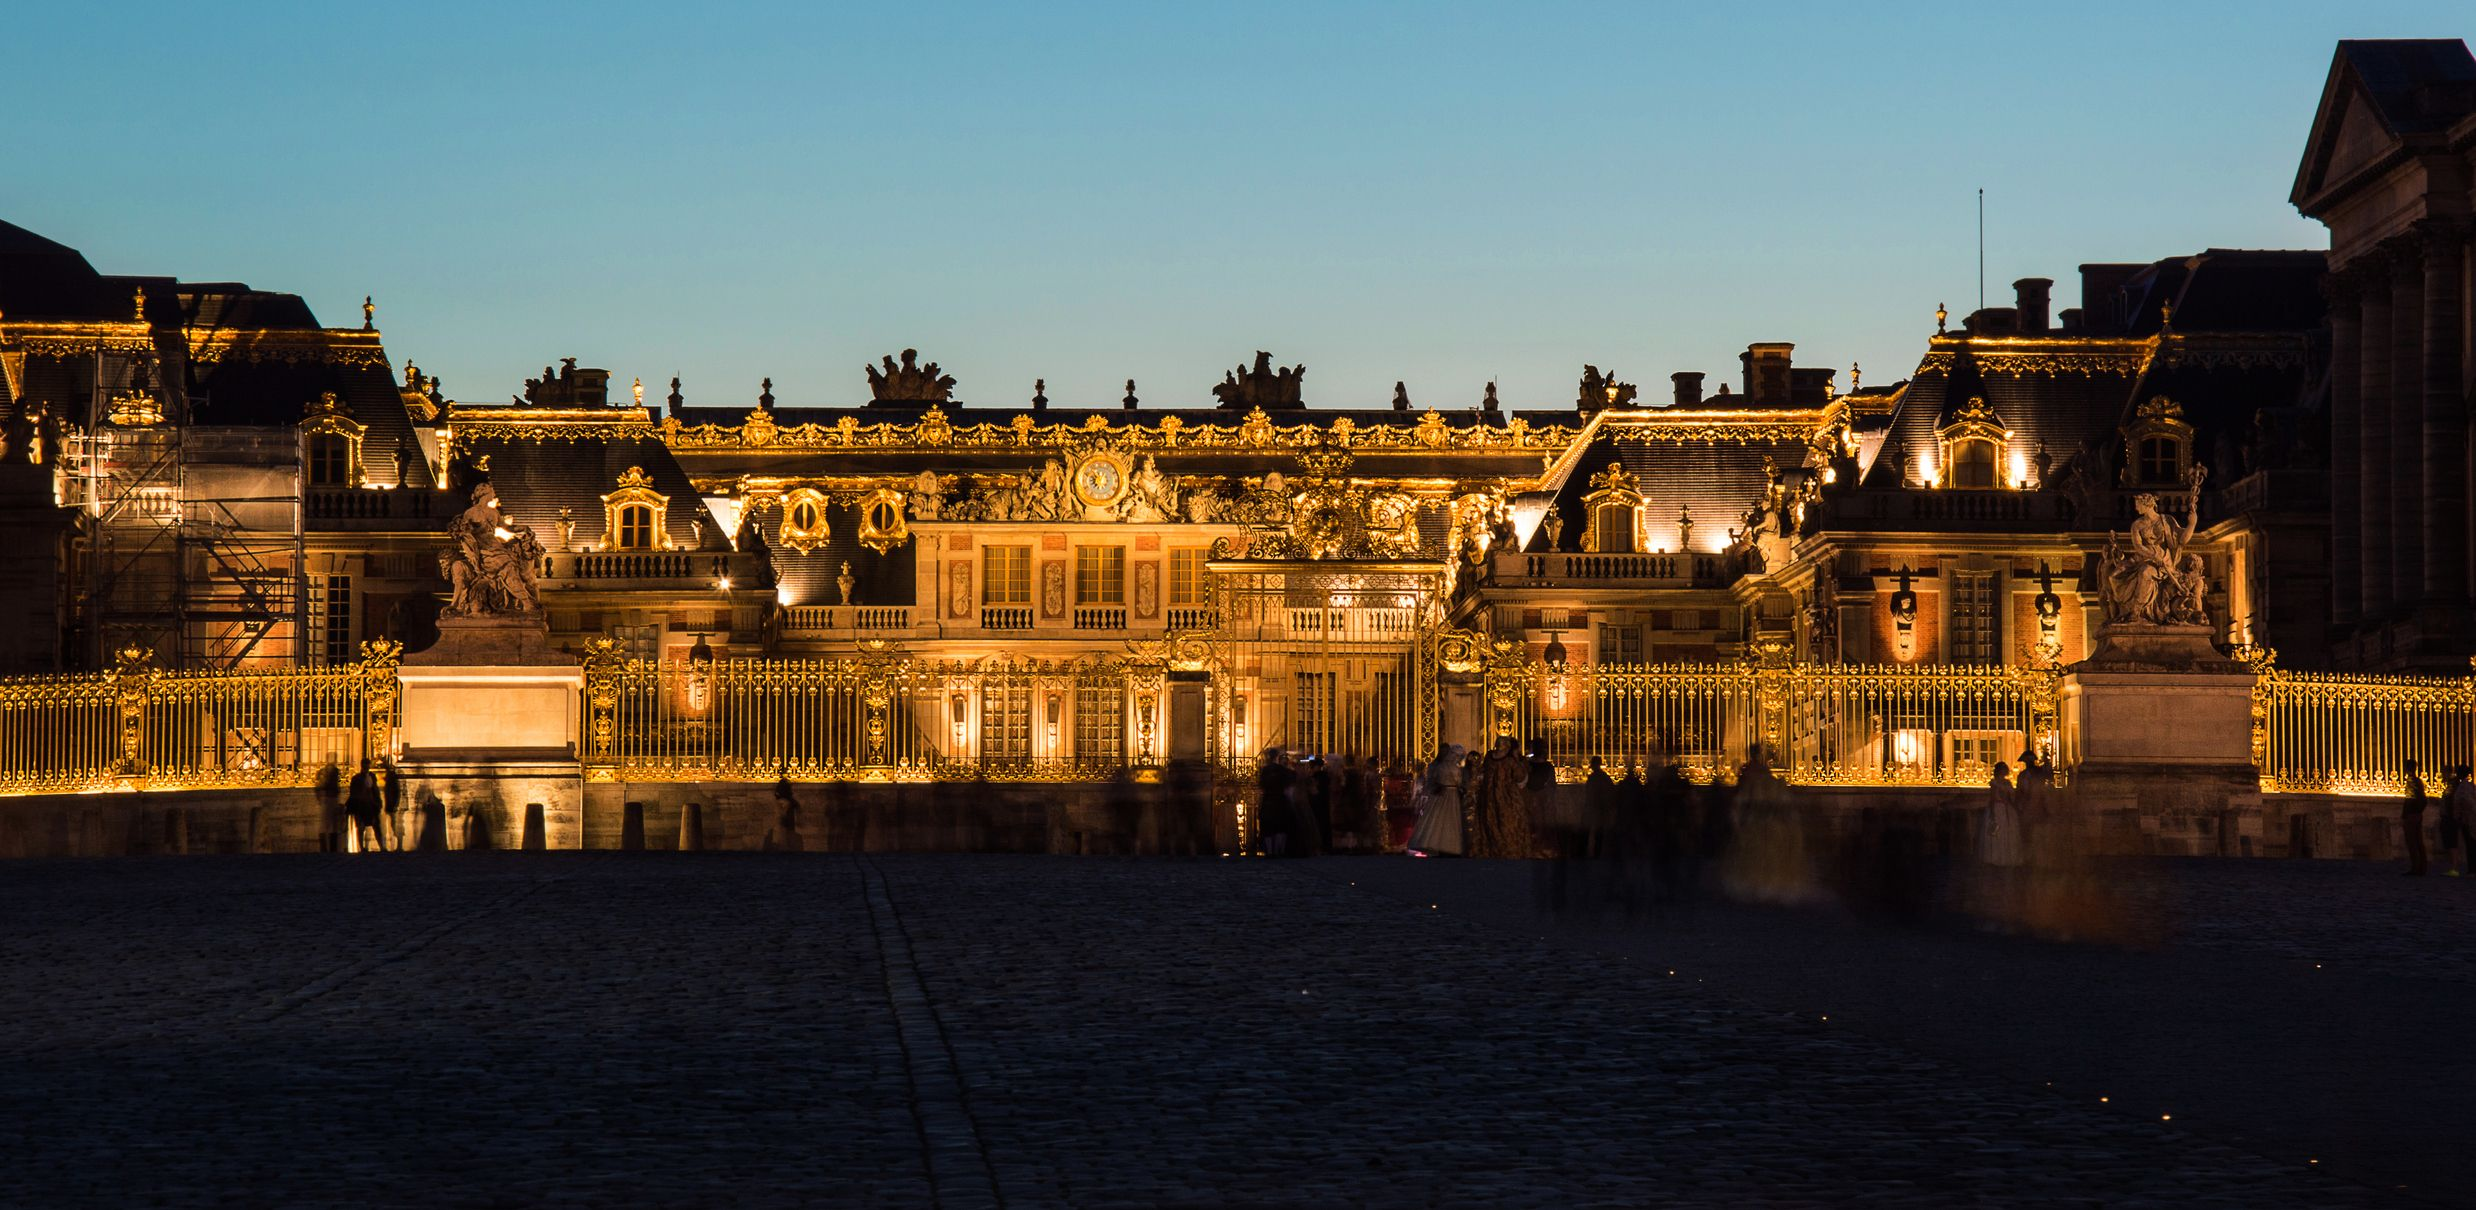 Live Like Royalty And Stay At This Hotel Inside The Palace of Versailles That's Opening Next Spring